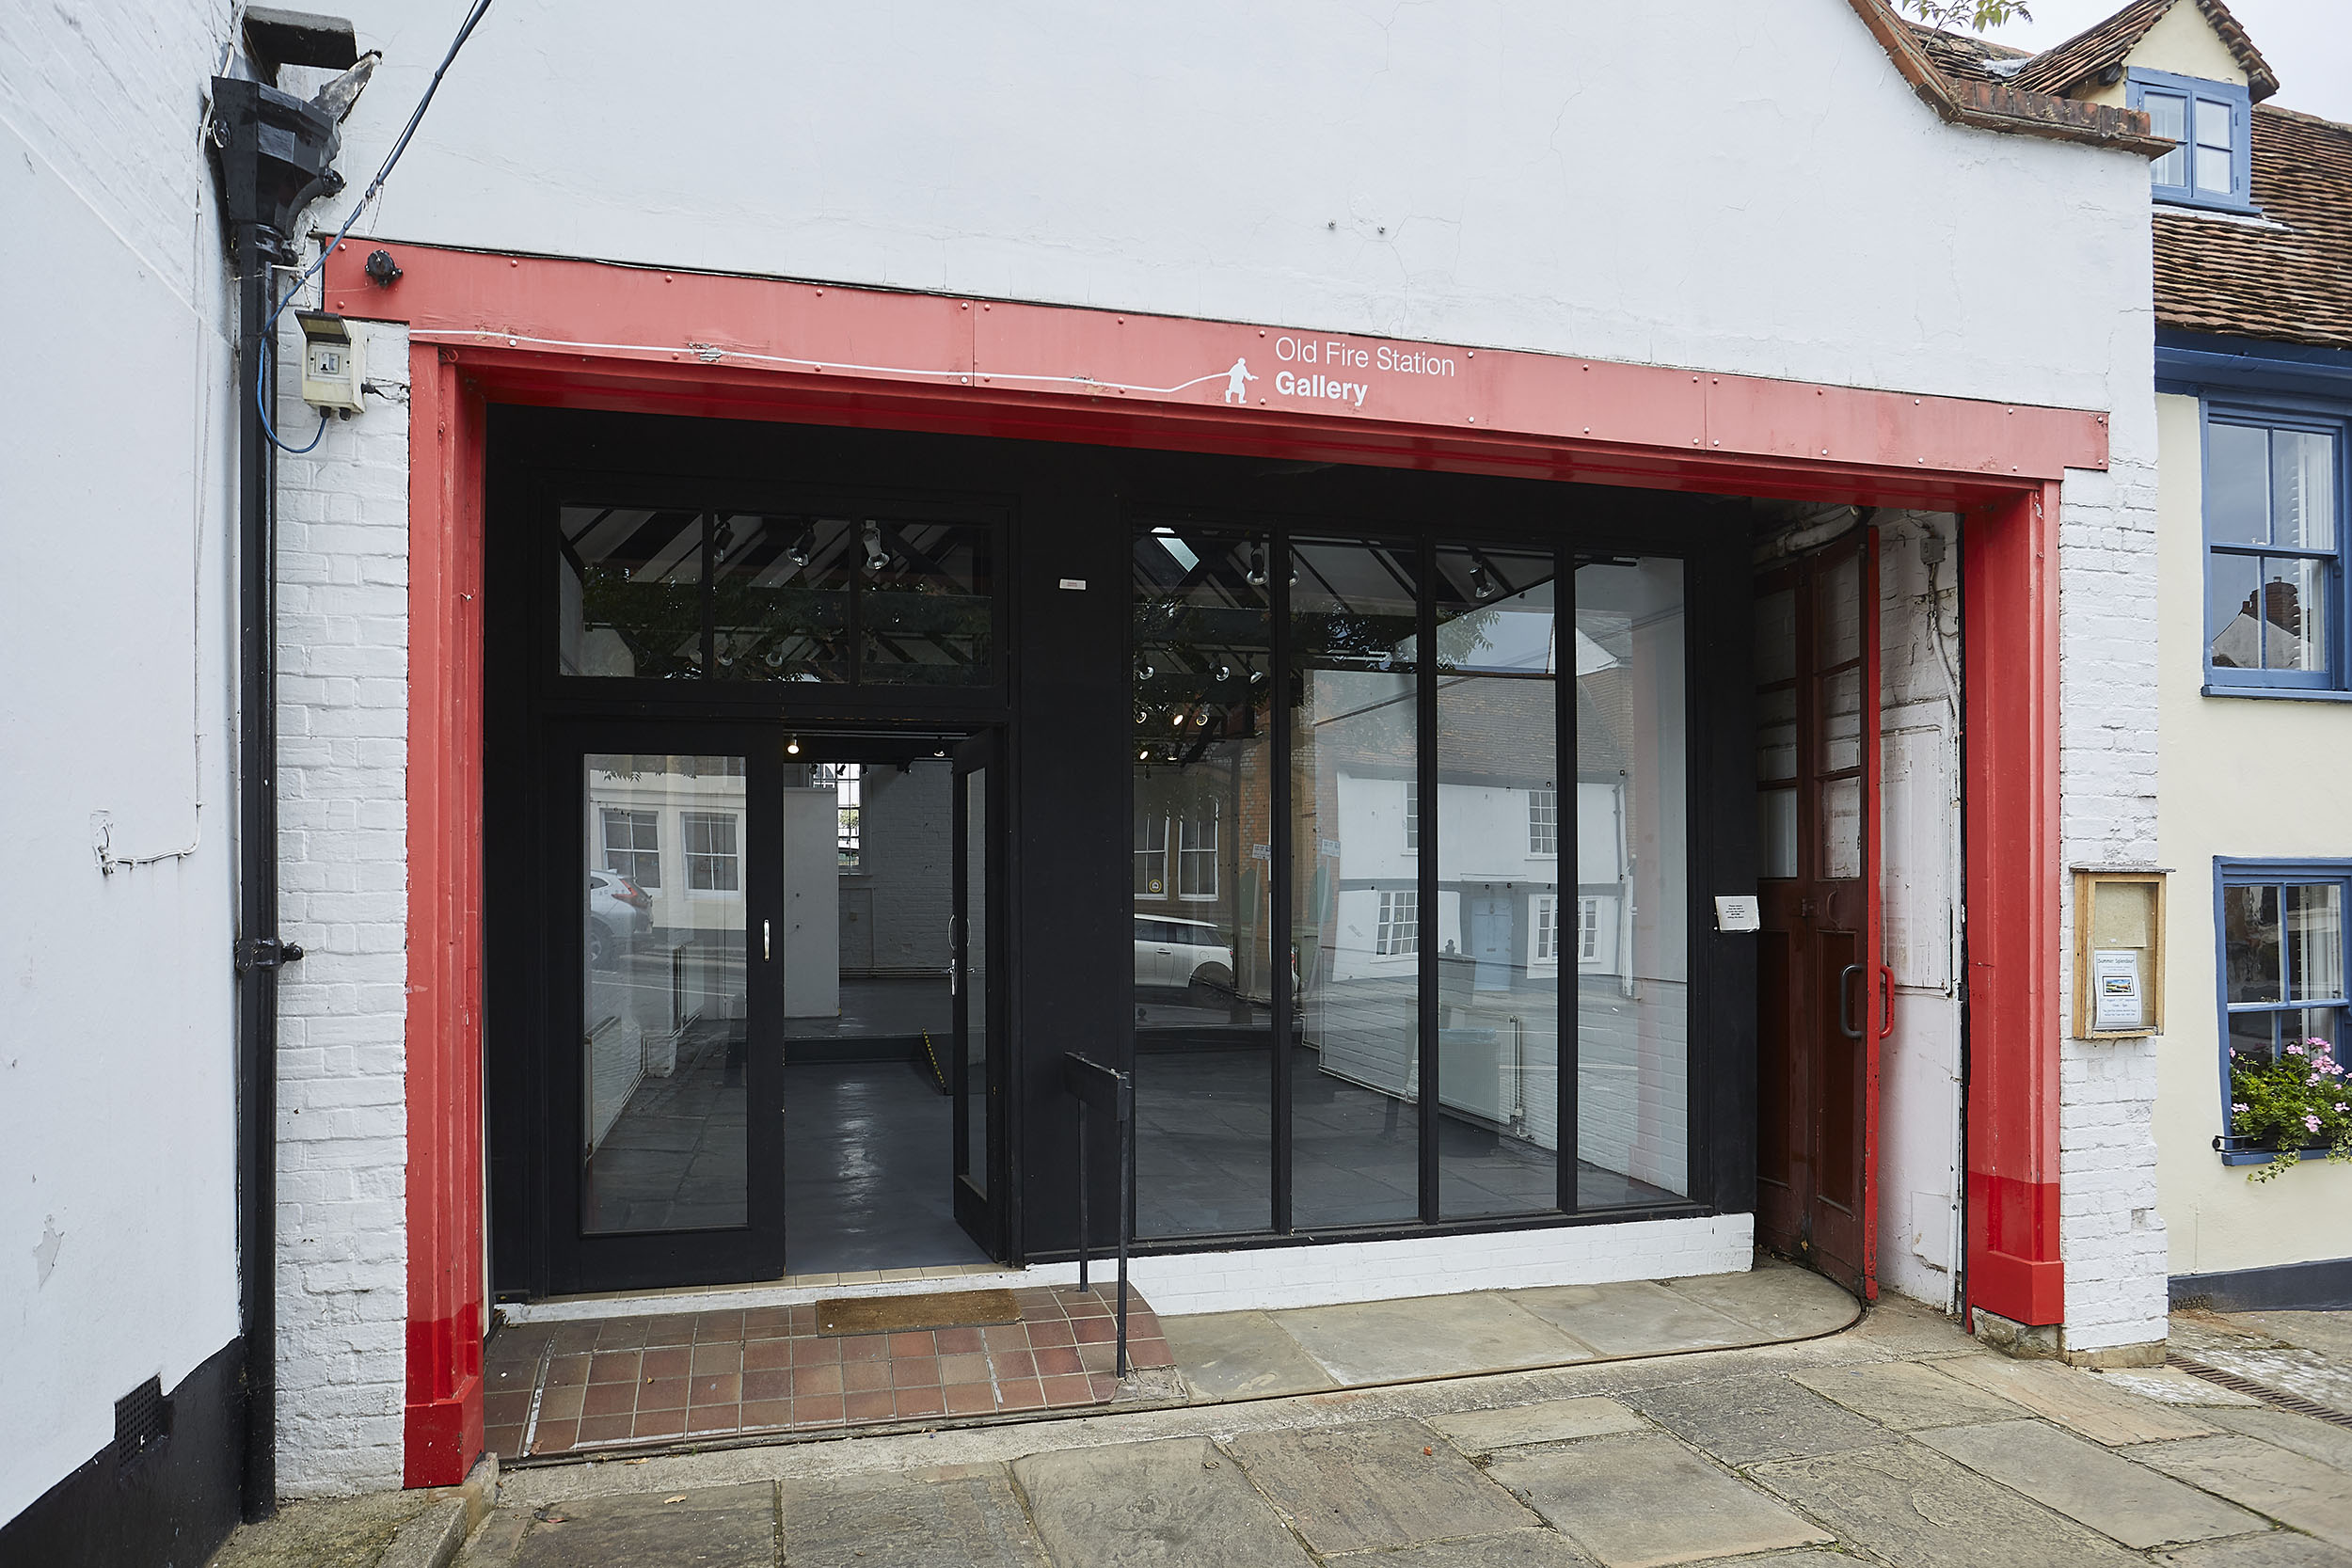 Henley Town Council - old fire station exterior with open door